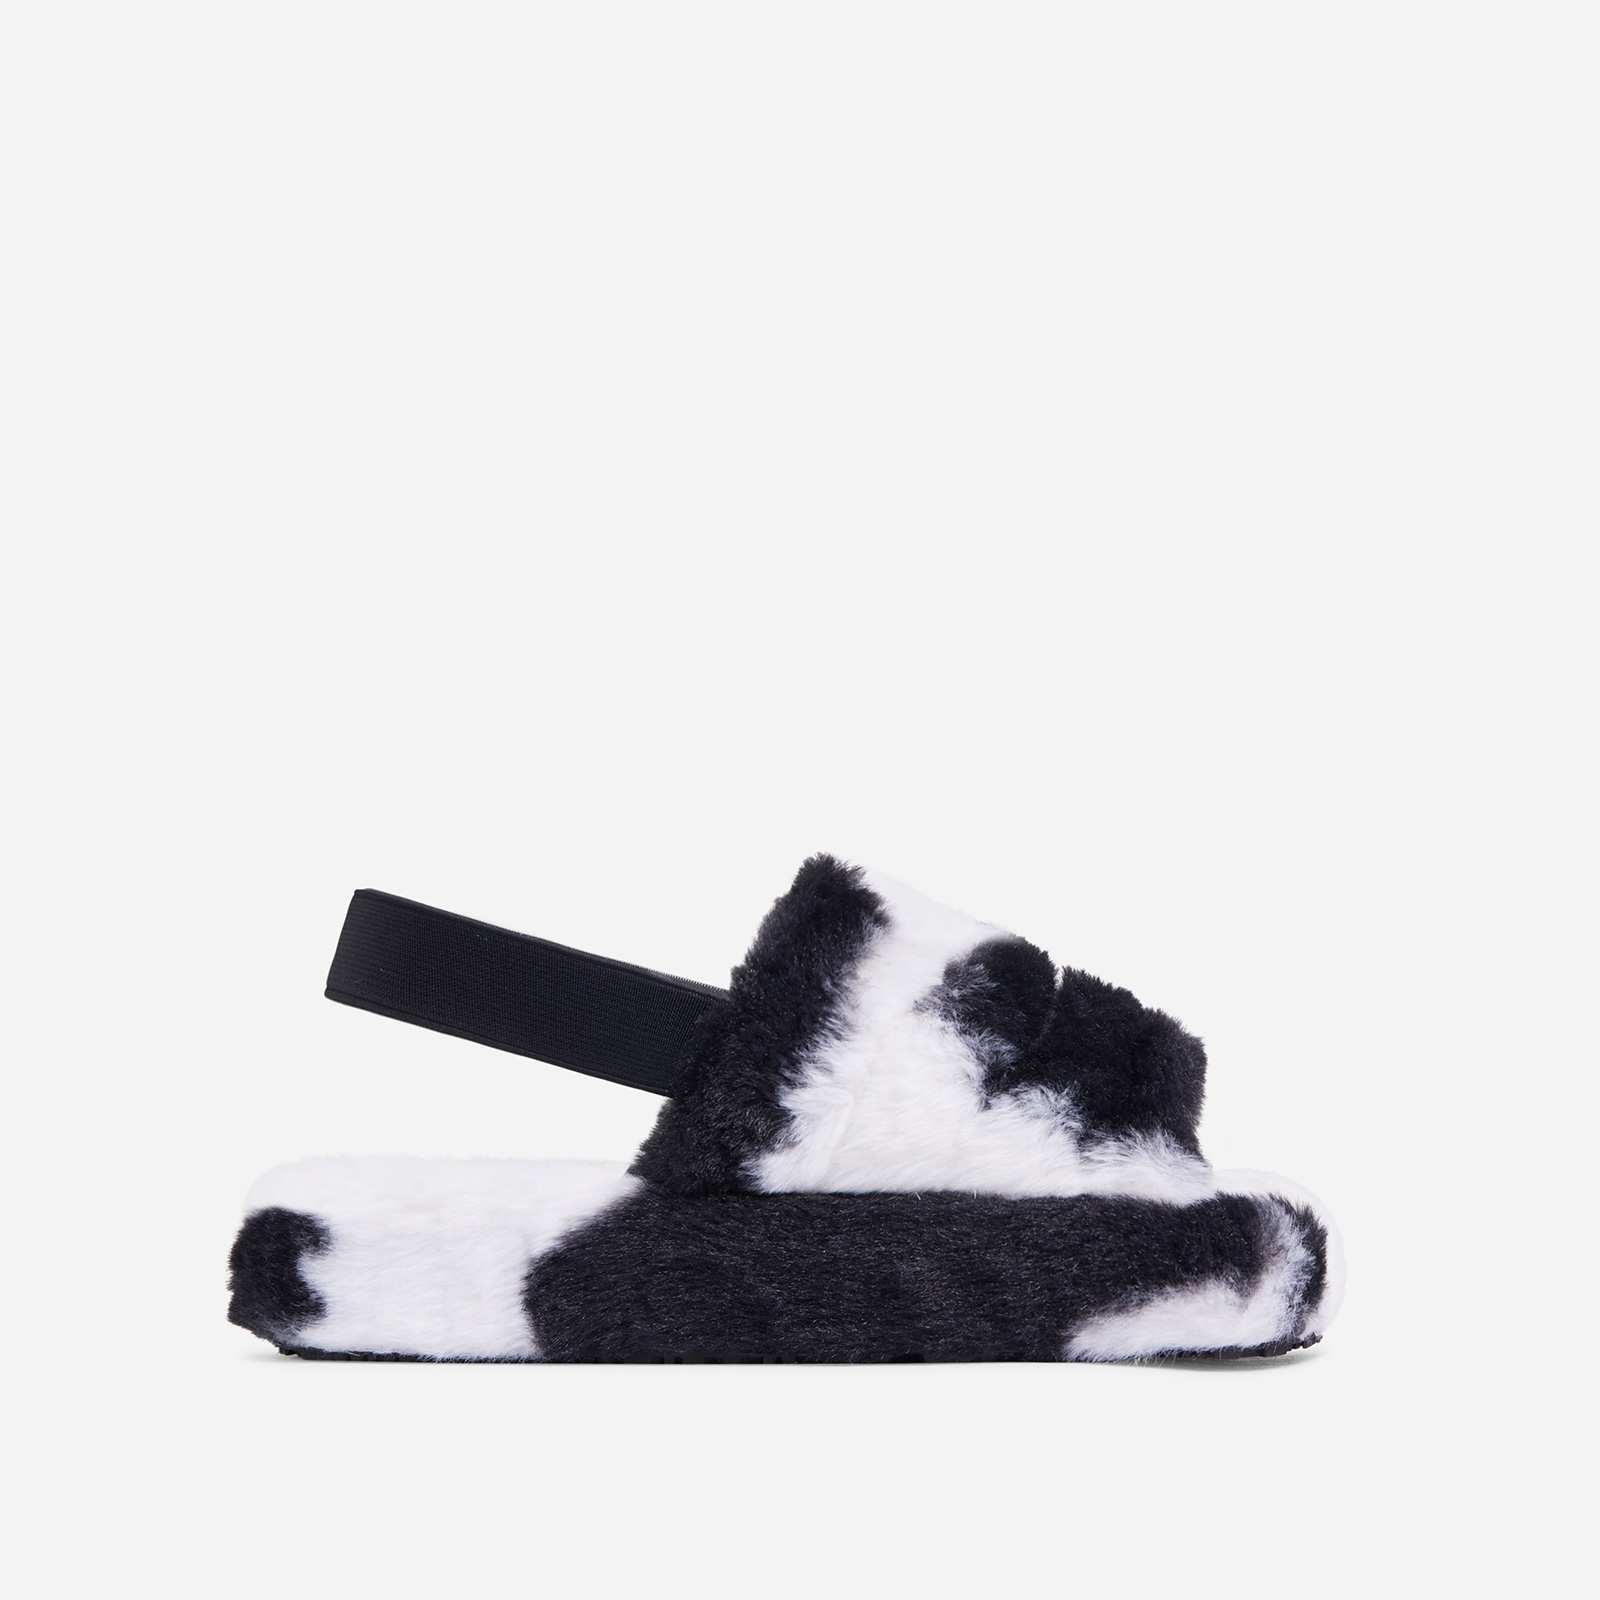 Boo Fluffy Stripe Slipper In Black Cow Print Faux Fur